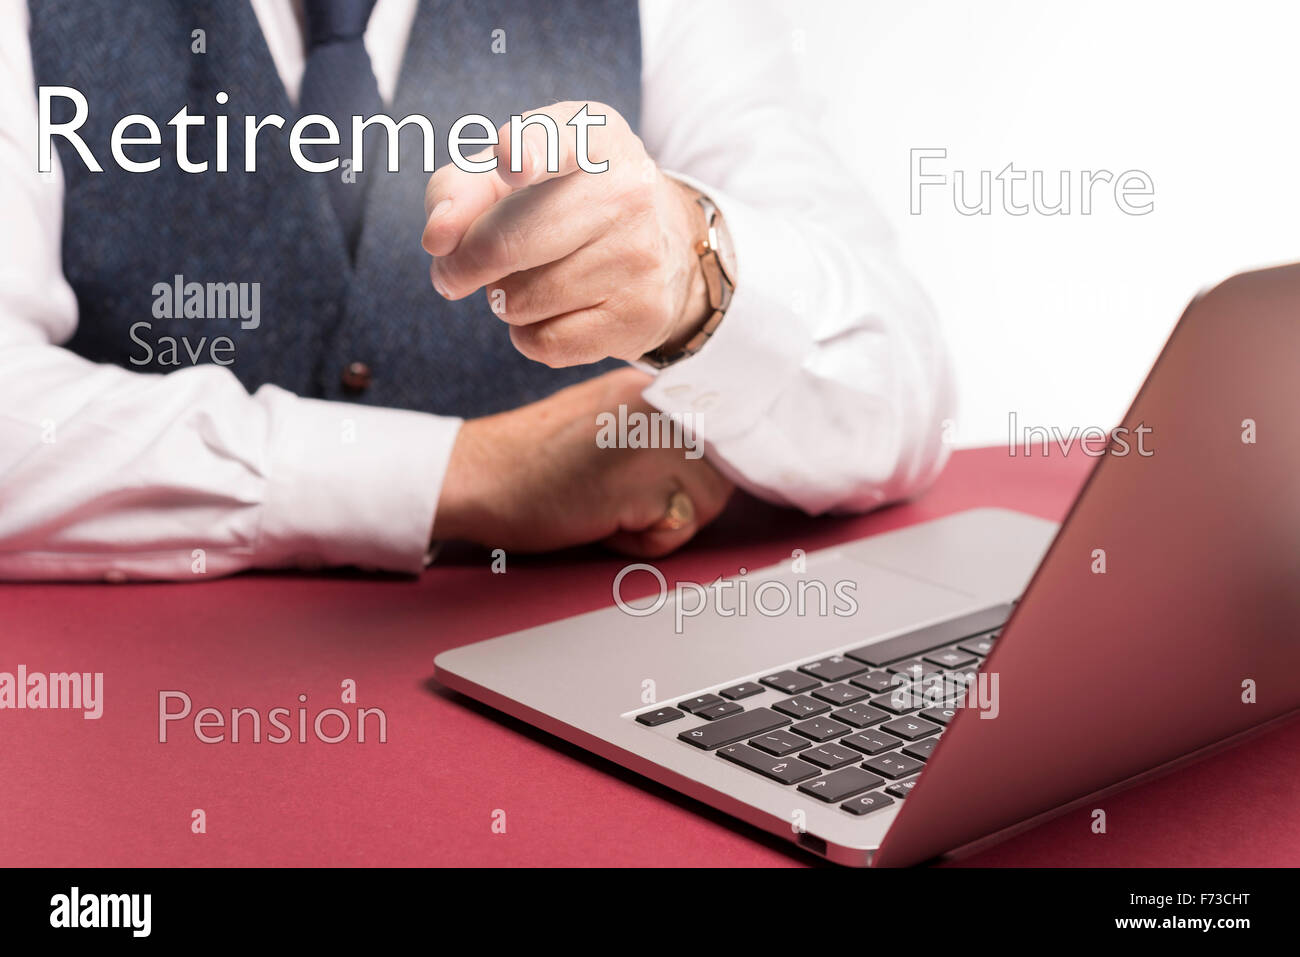 businessman sitting at desk pointing at screen gesturing retirement. - Stock Image